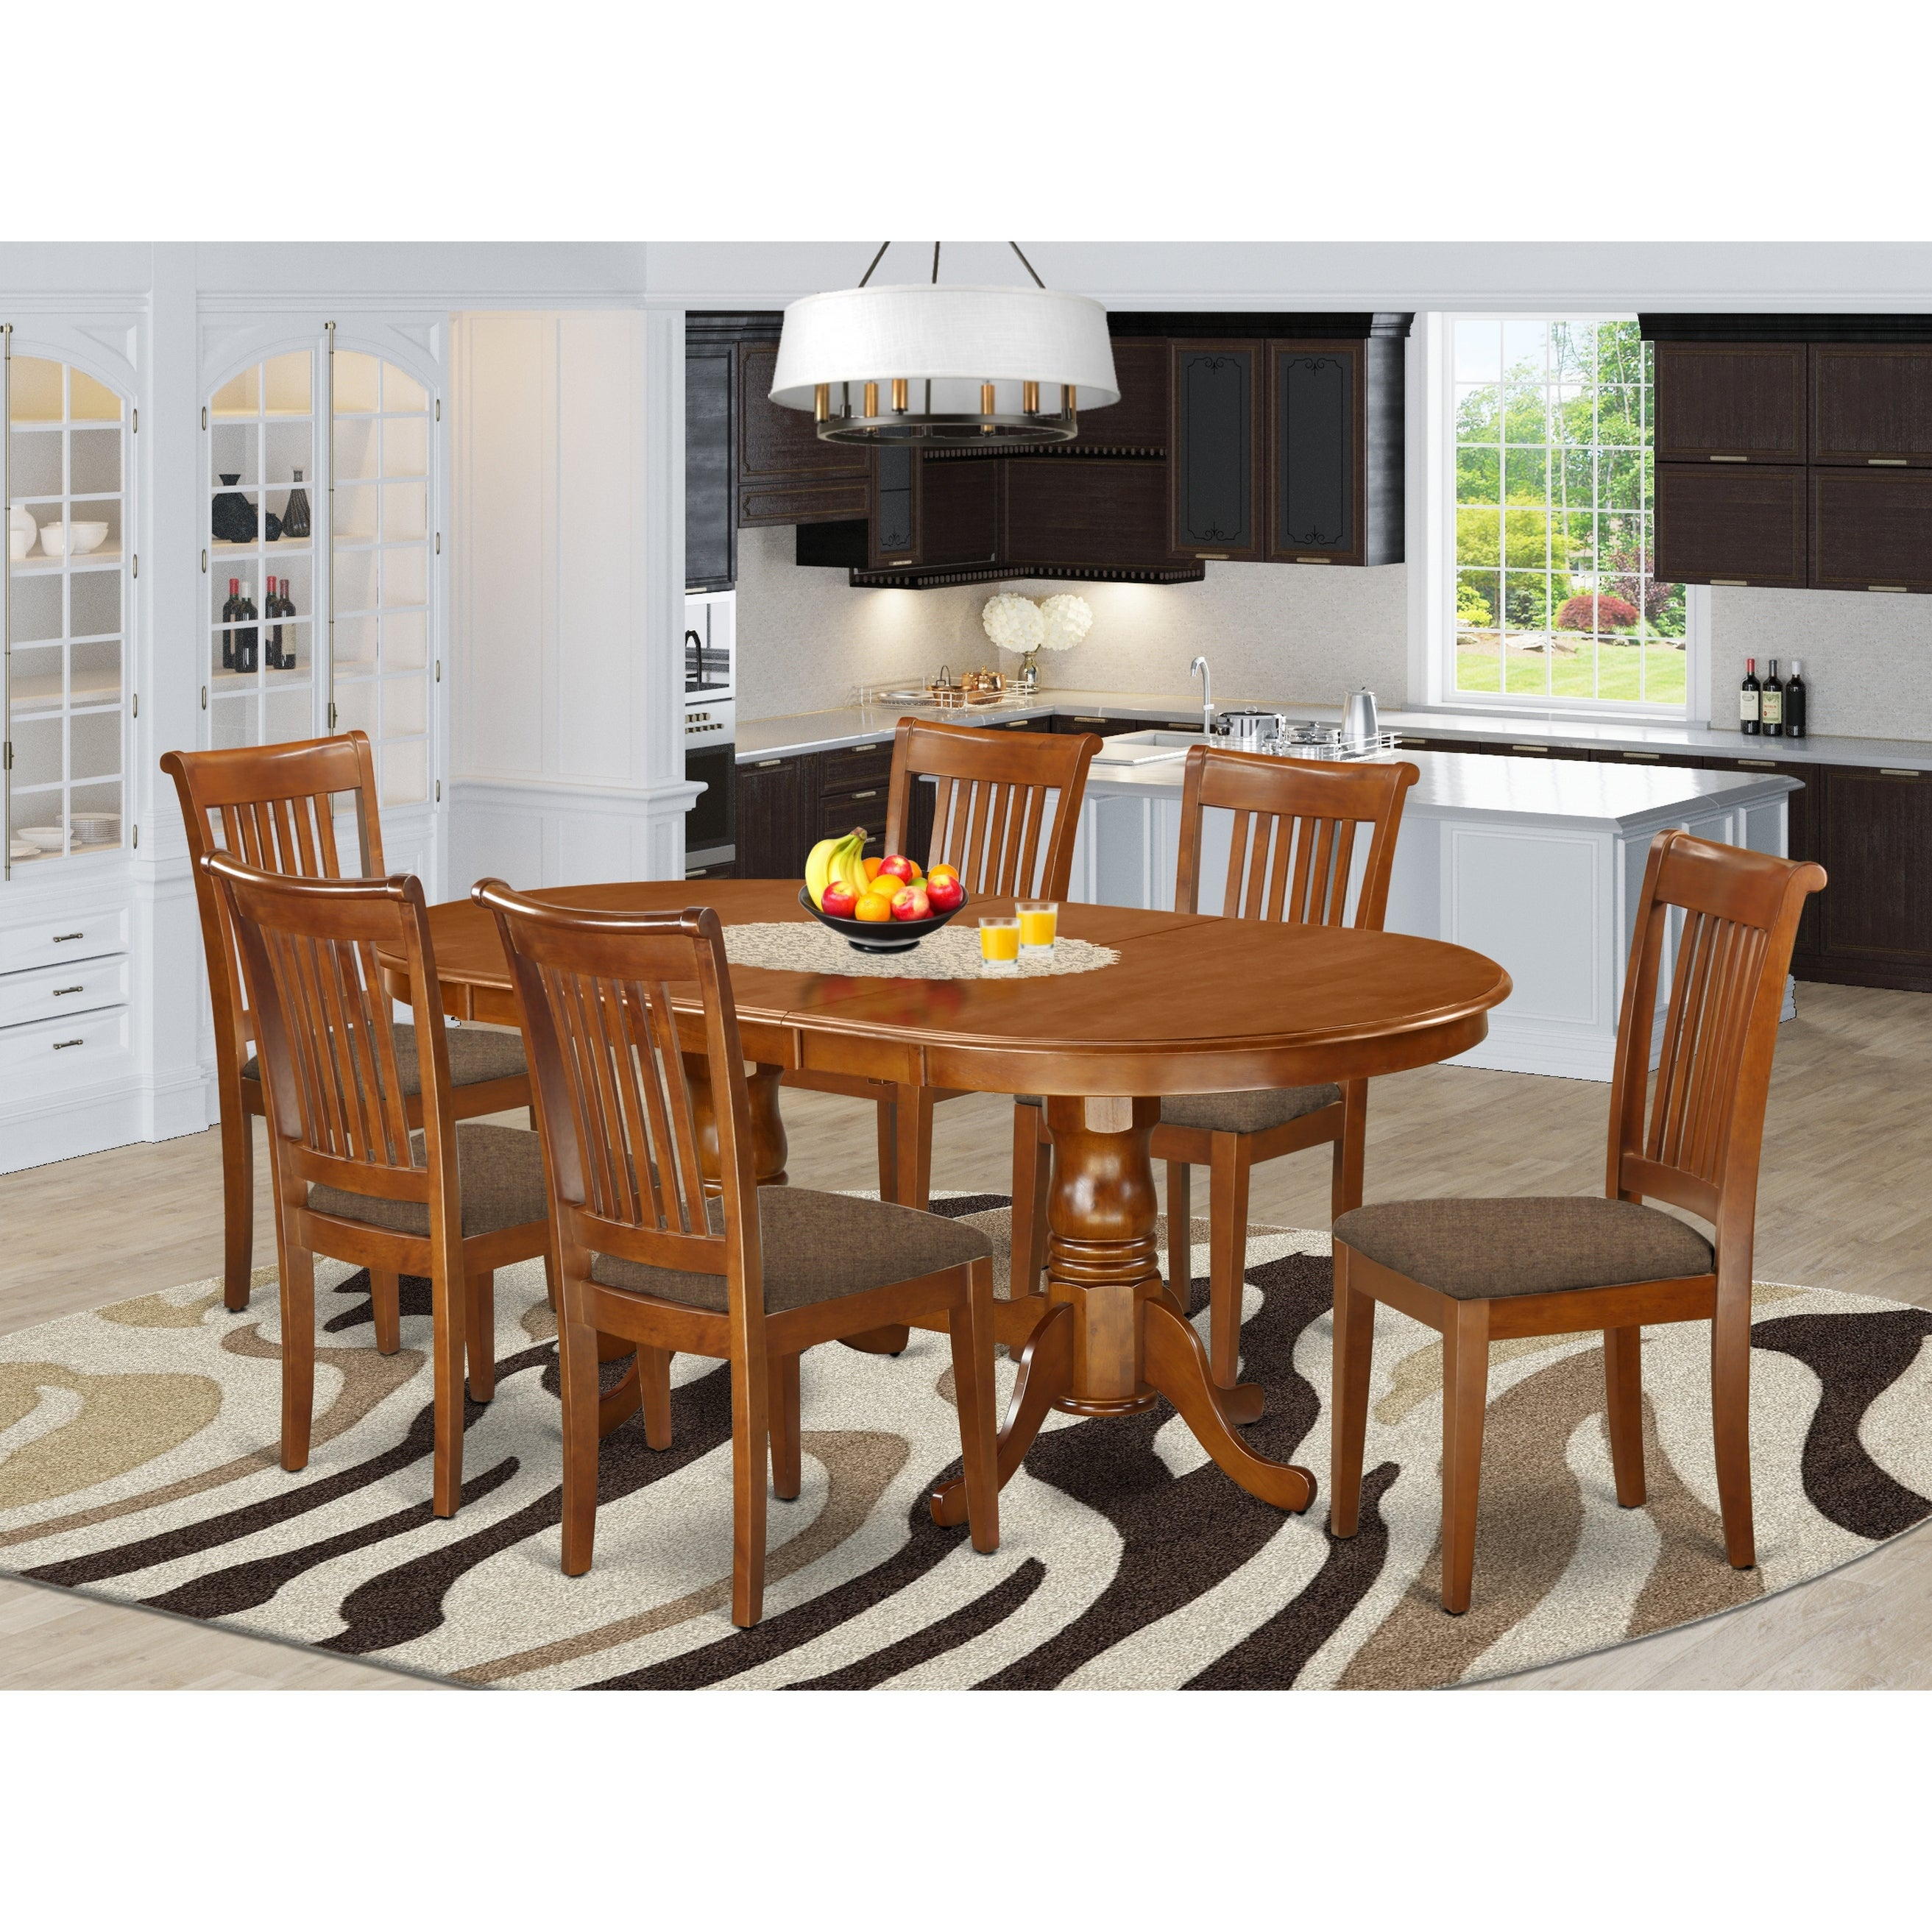 7 Pc Dining Room Set Dining Table Plus 6 Chairs In Saddle Brown Finish Overstock 17676493